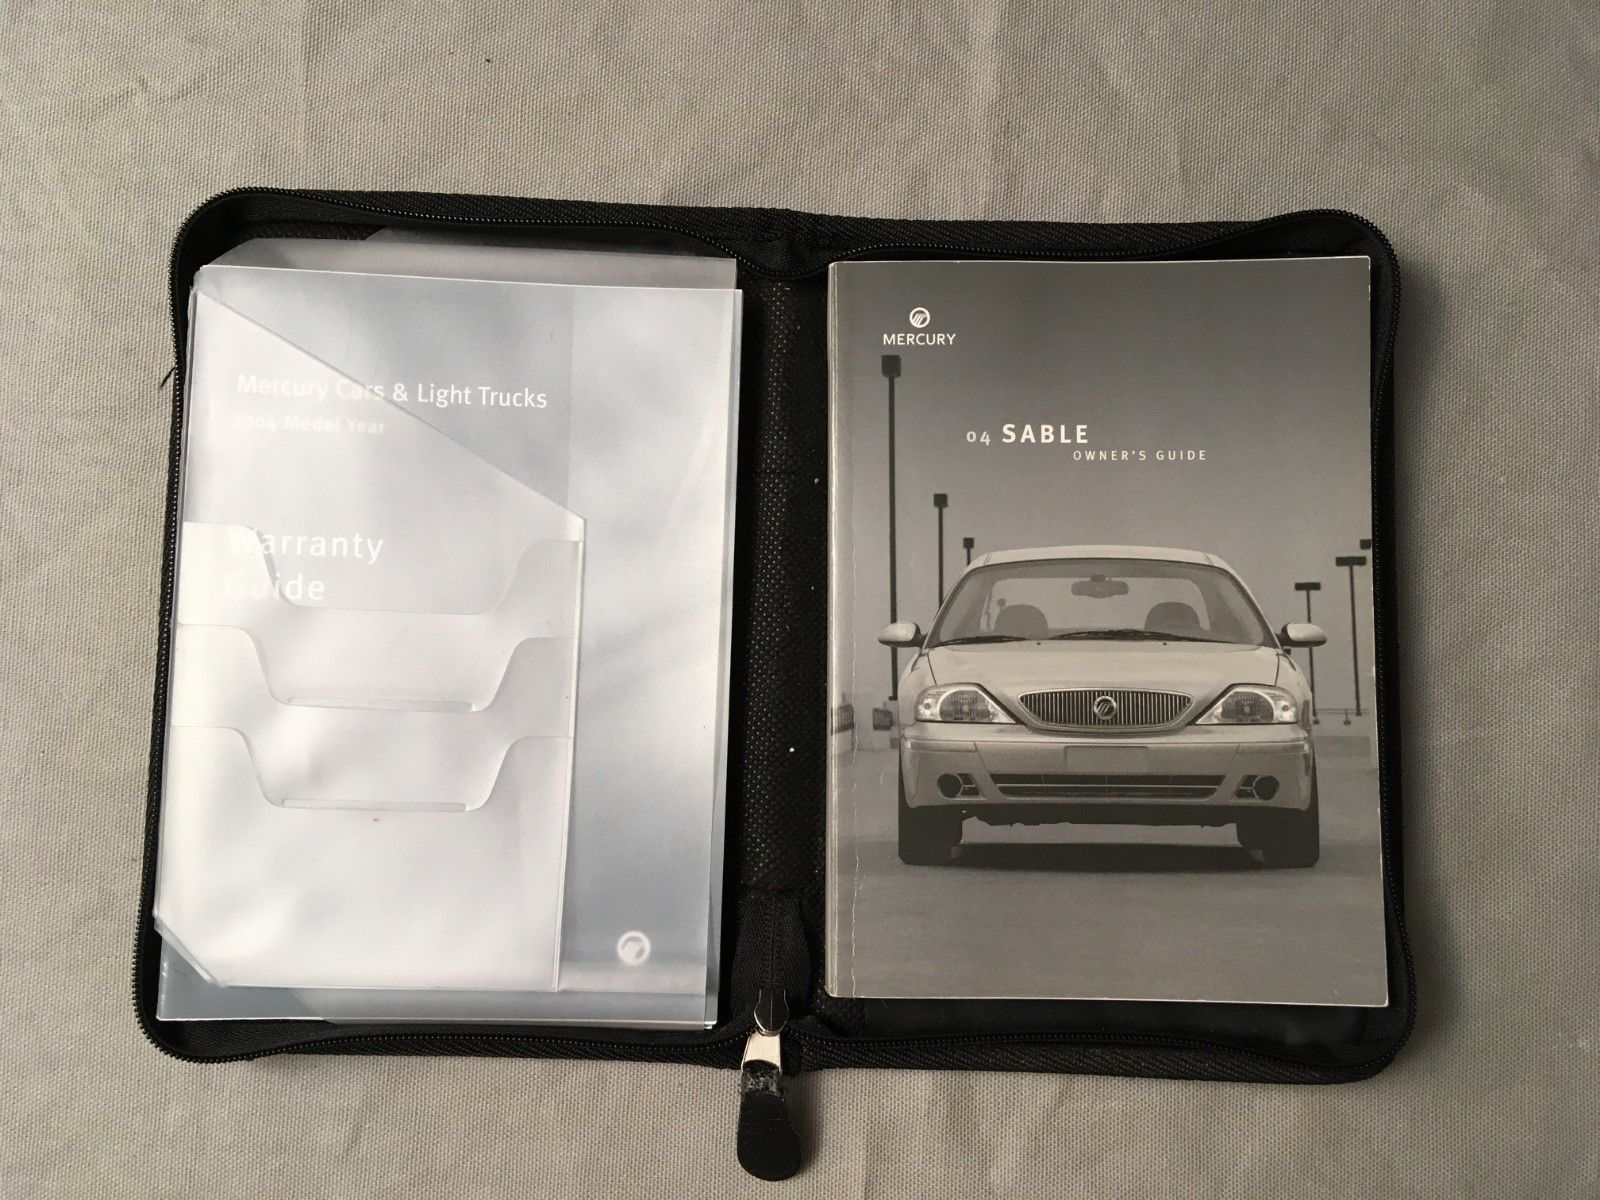 Mercury Sable 2004 Owner's Guide in zippered case